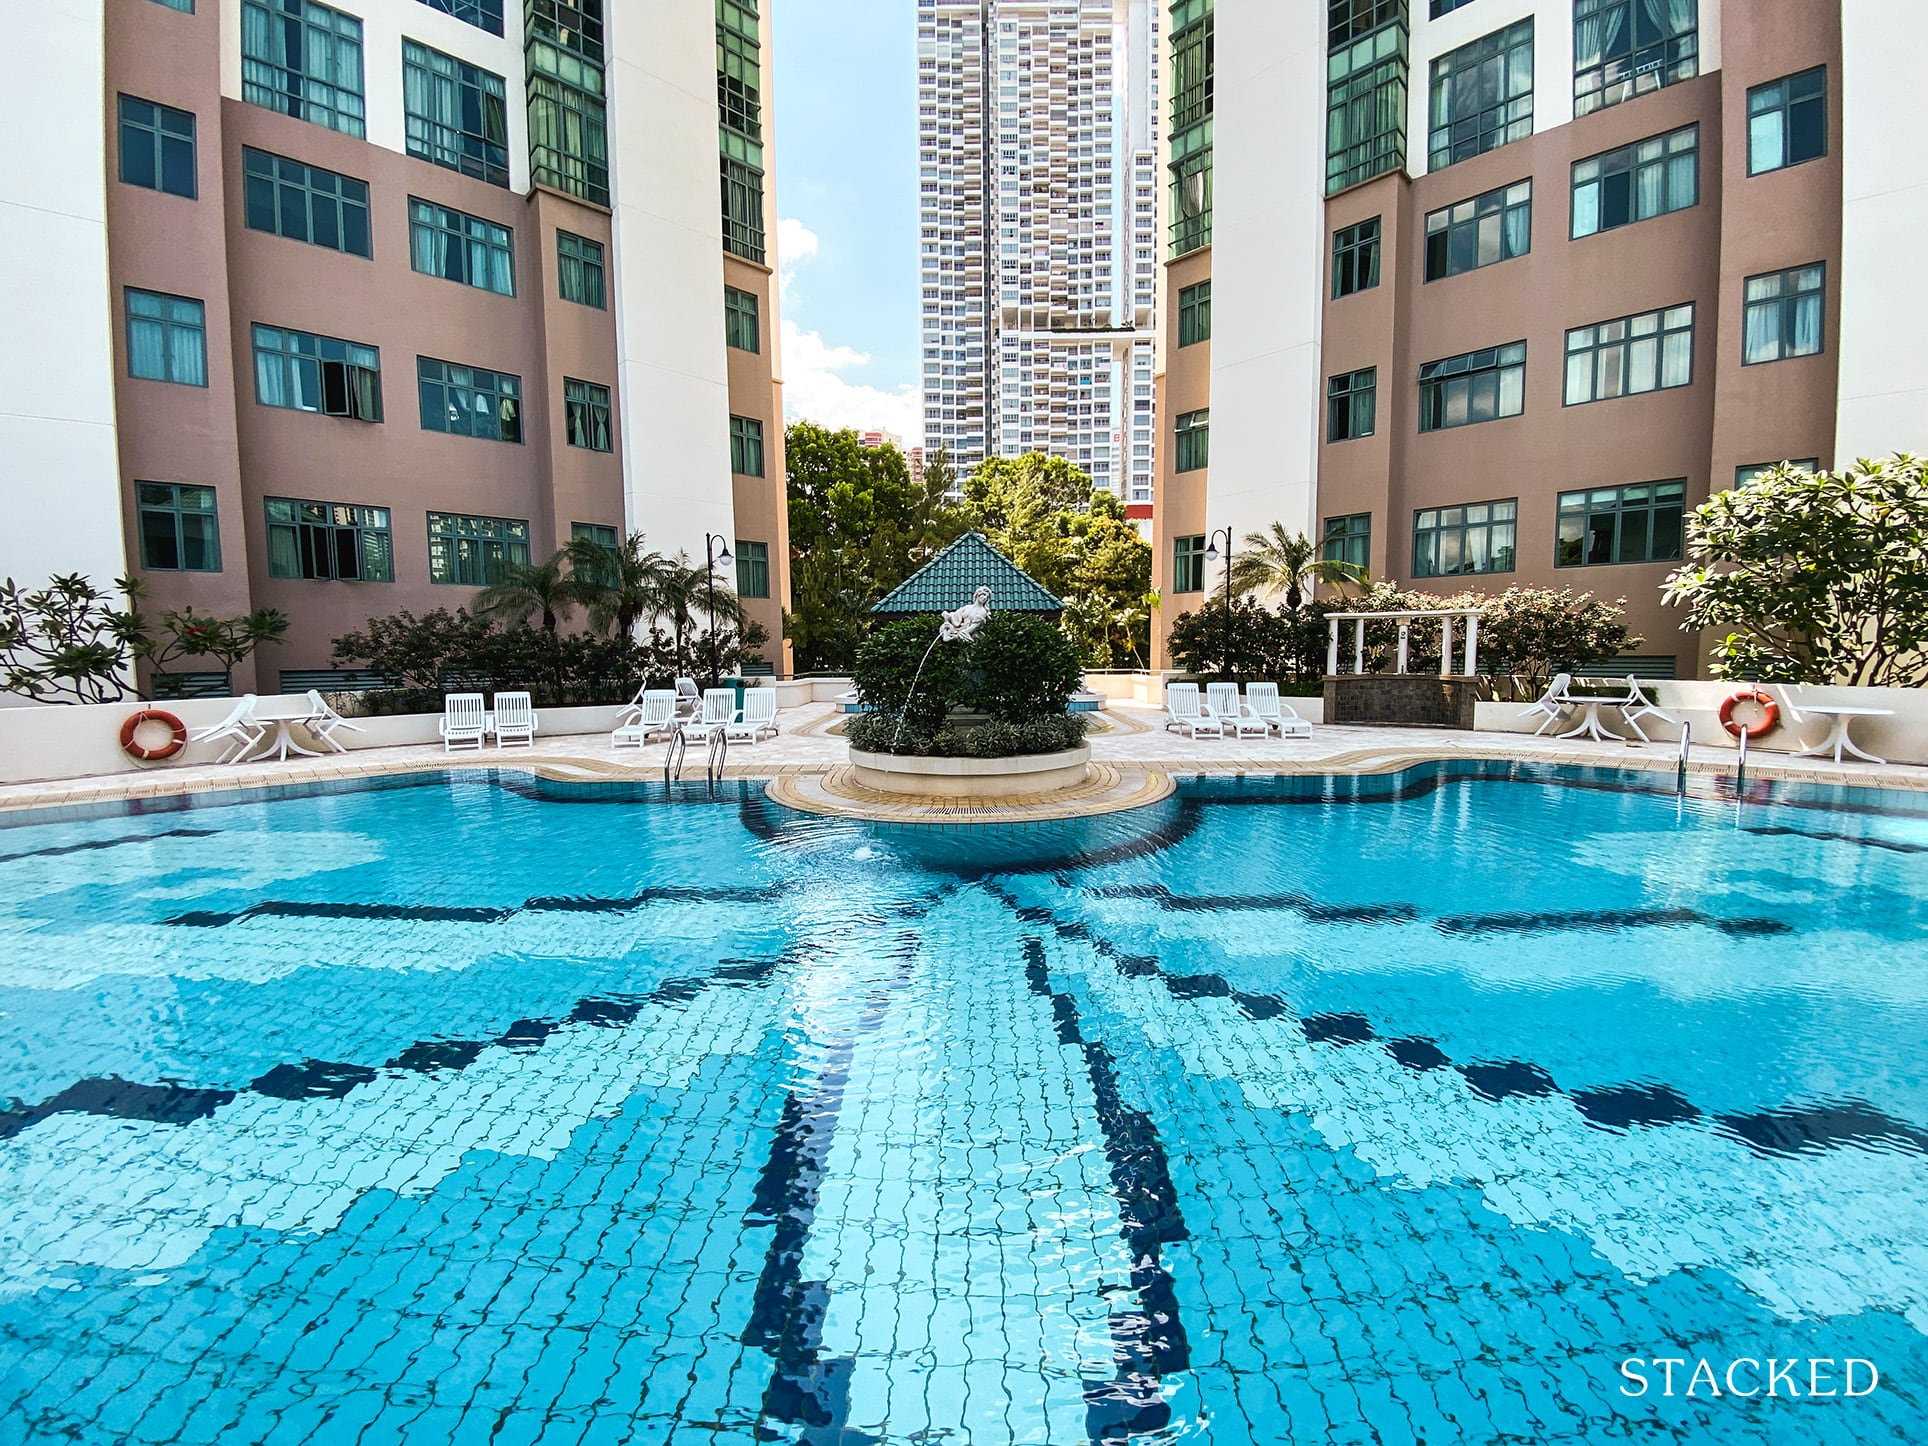 Tanglin regency pool